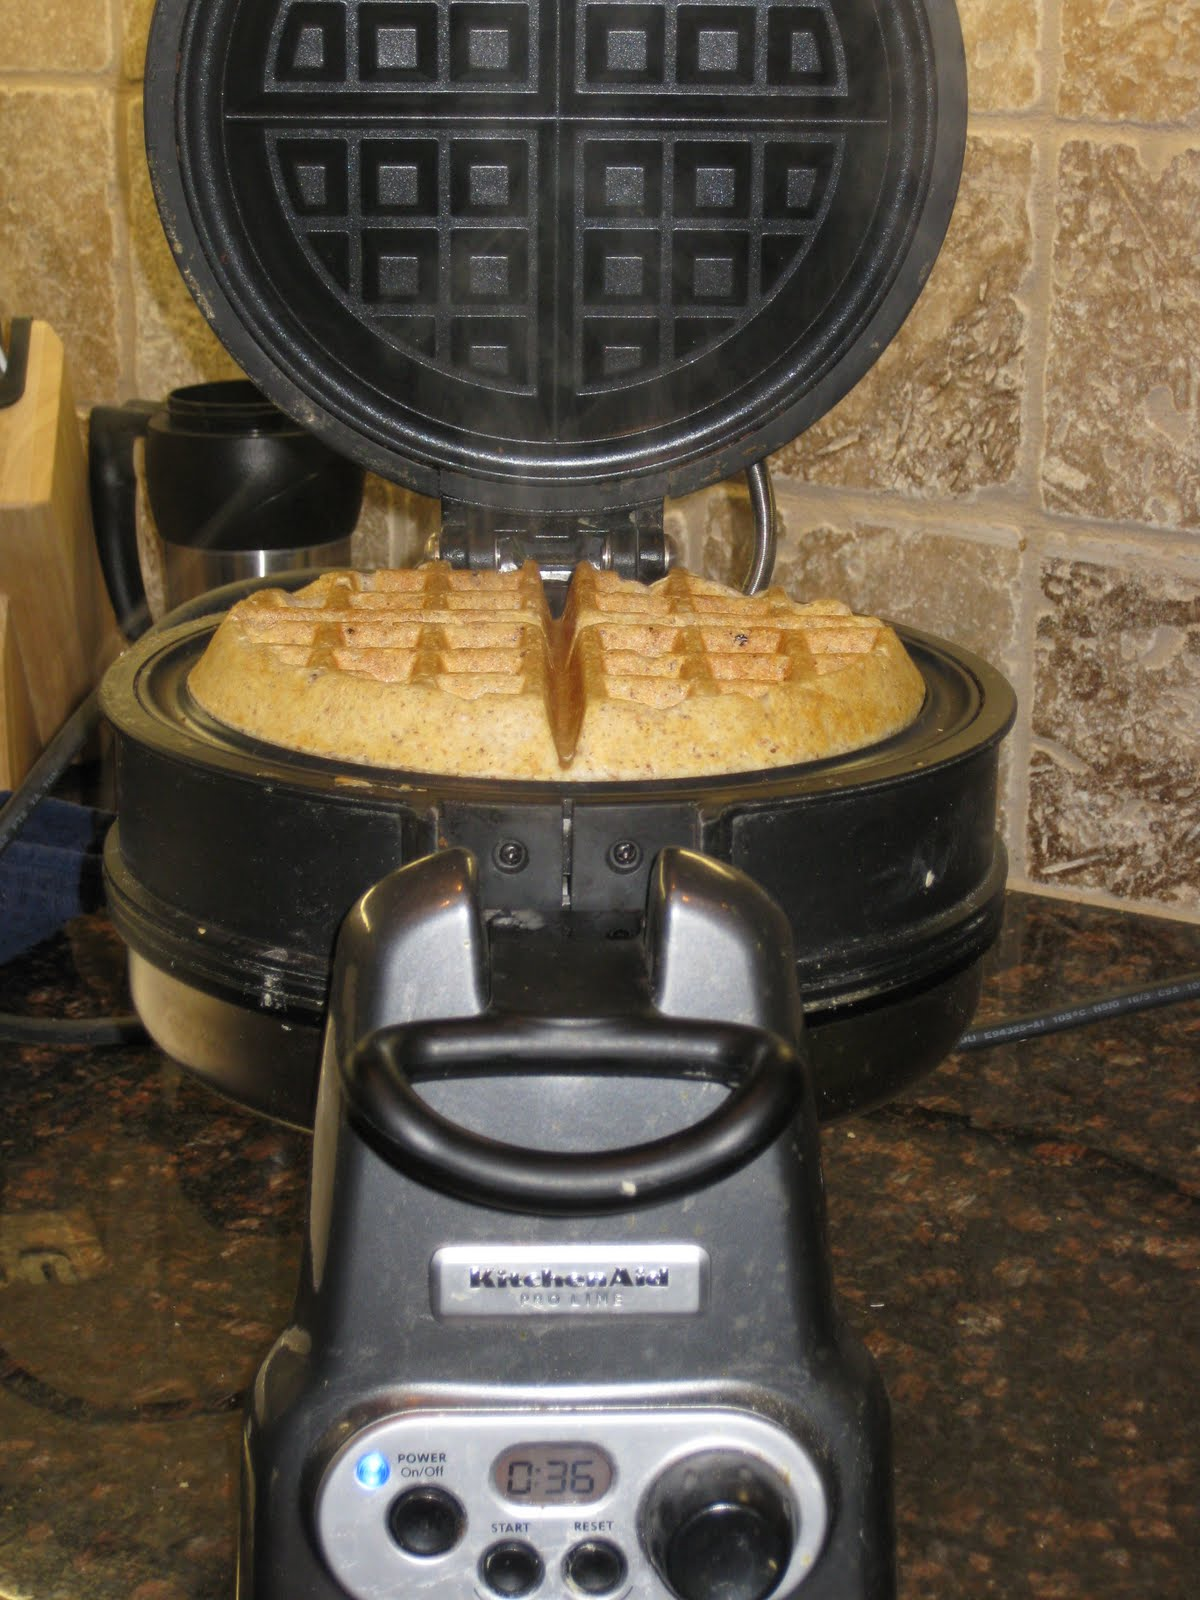 and showing off the best kitchen aid waffle maker ever if youre drawing a blank on what you want from santawaffle maker just sayin you wont regret it - Kitchen Aid Waffle Makers